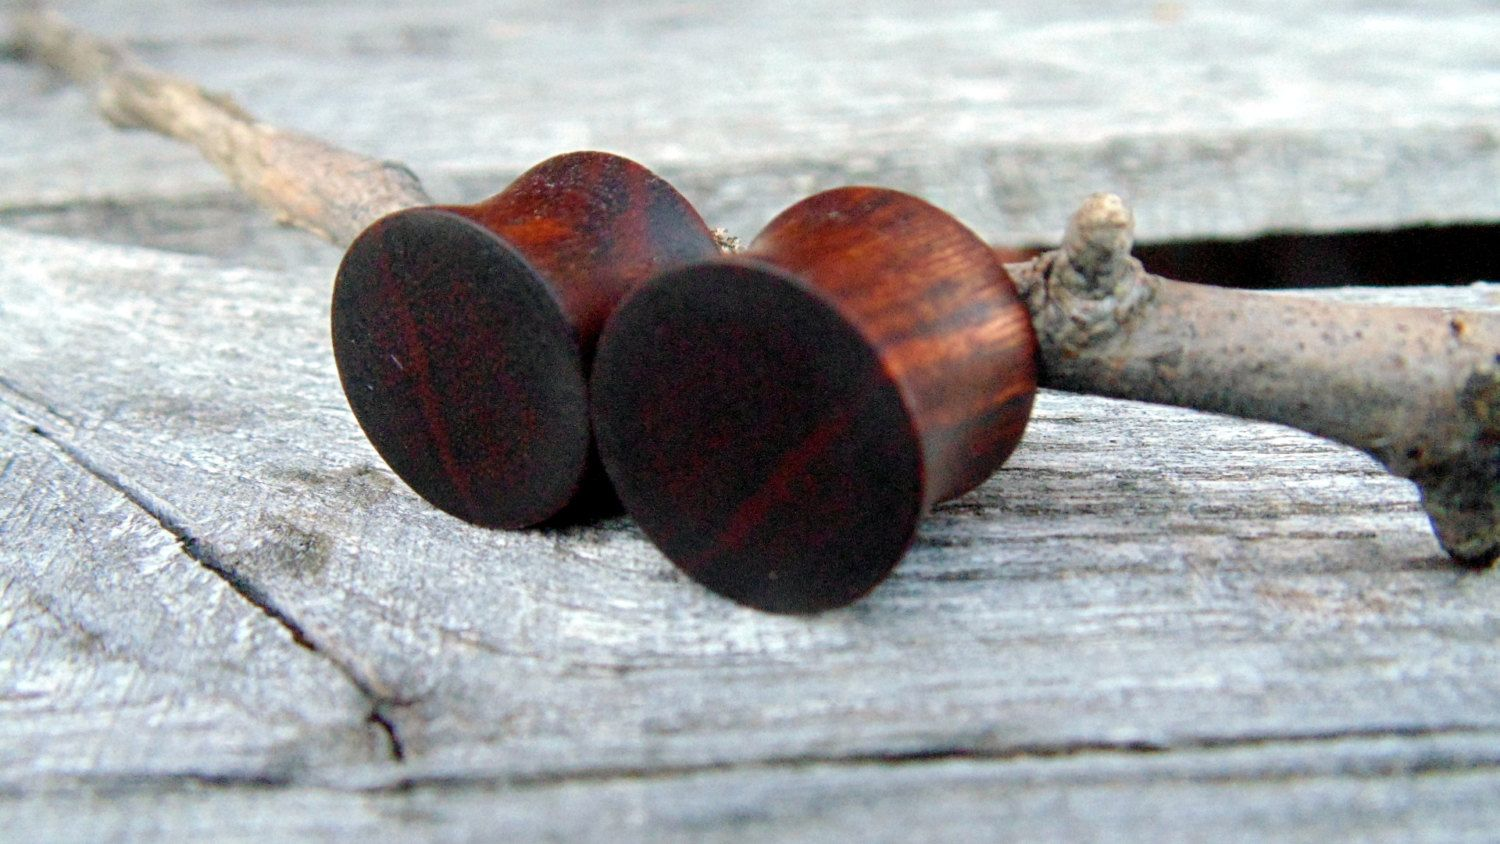 14mm Brown Ebony ear plugs, 9/16ths hand turned wooden gauges, organic wood plugs by MustLoveWoodPlugs on Etsy